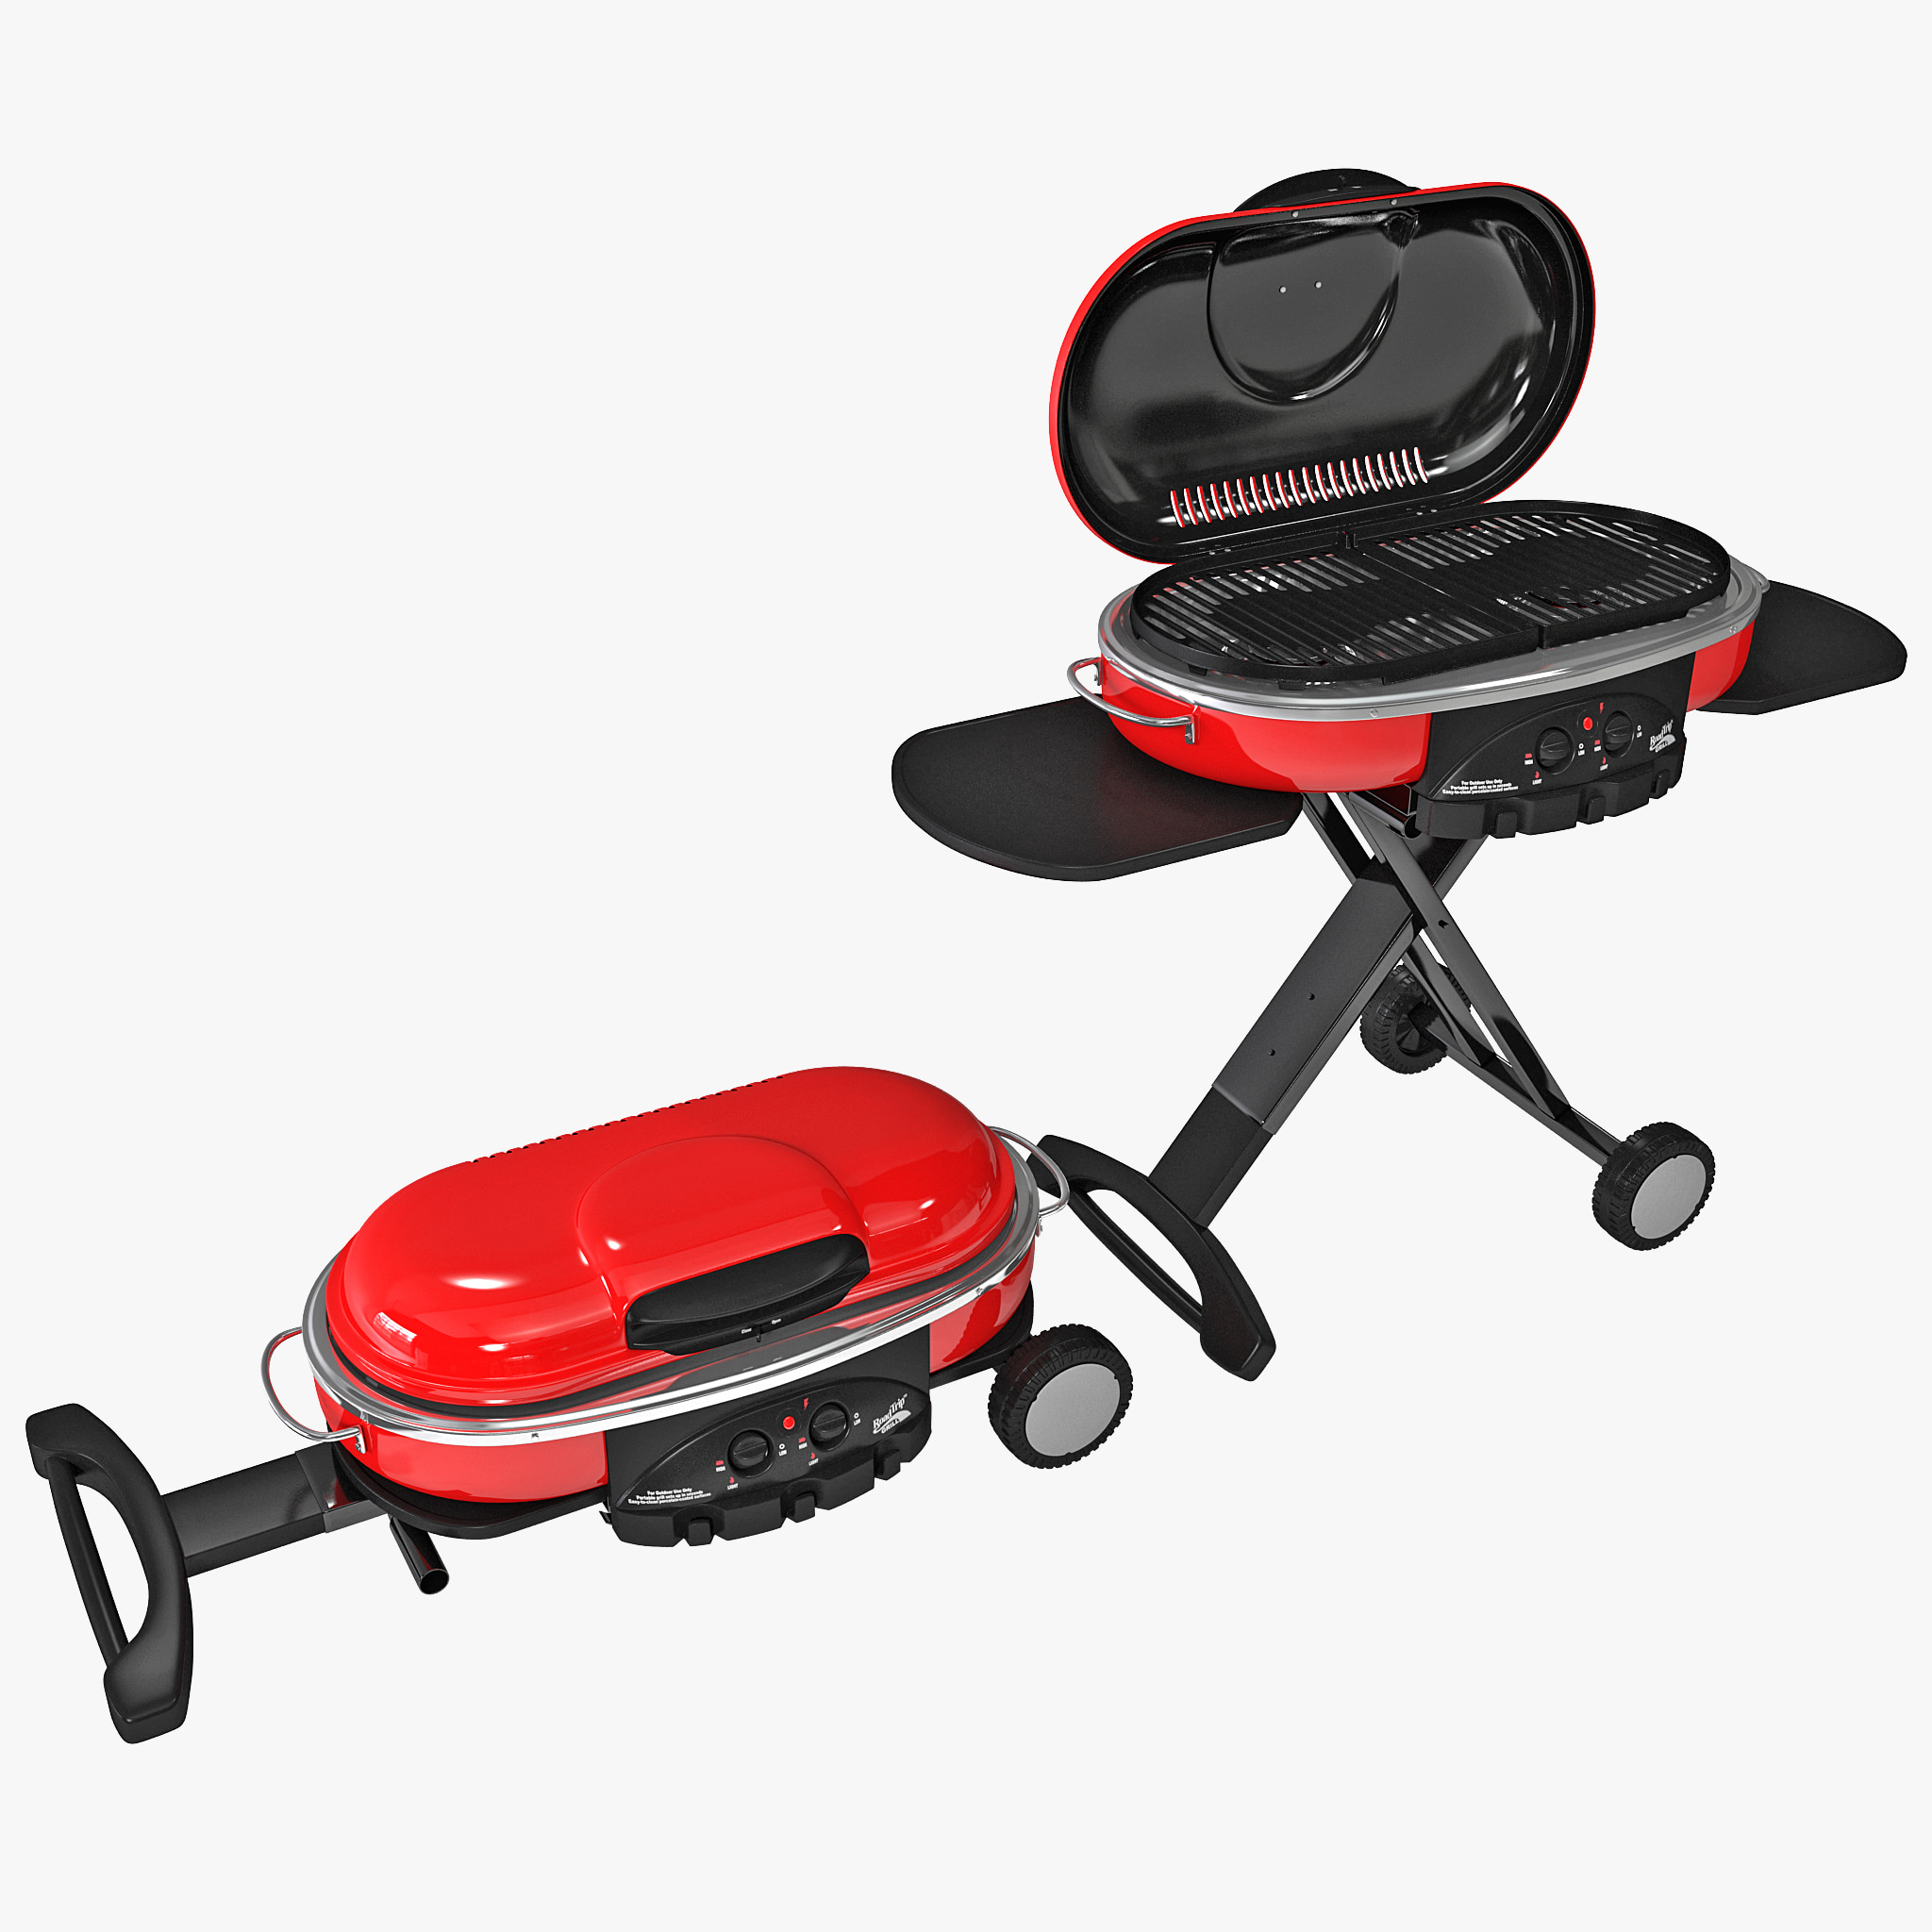 Portable grill pictures posters news and videos on